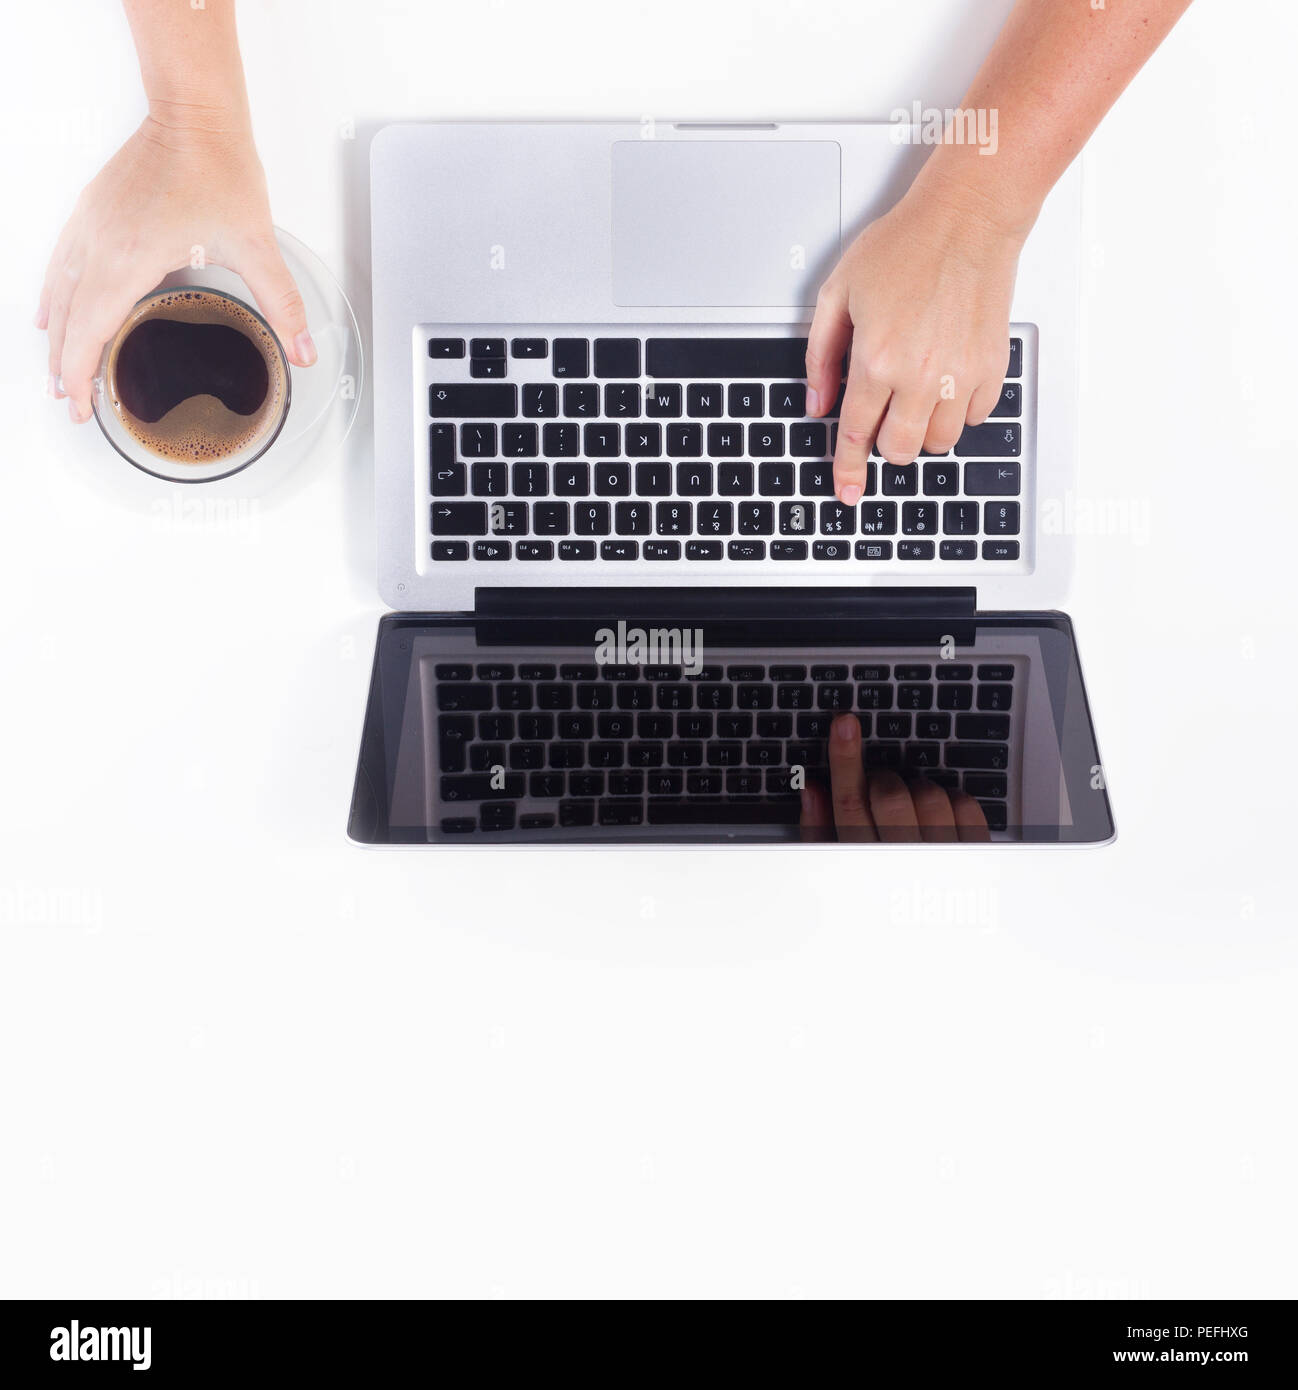 someones hands and latop stock photo 215472952 alamy